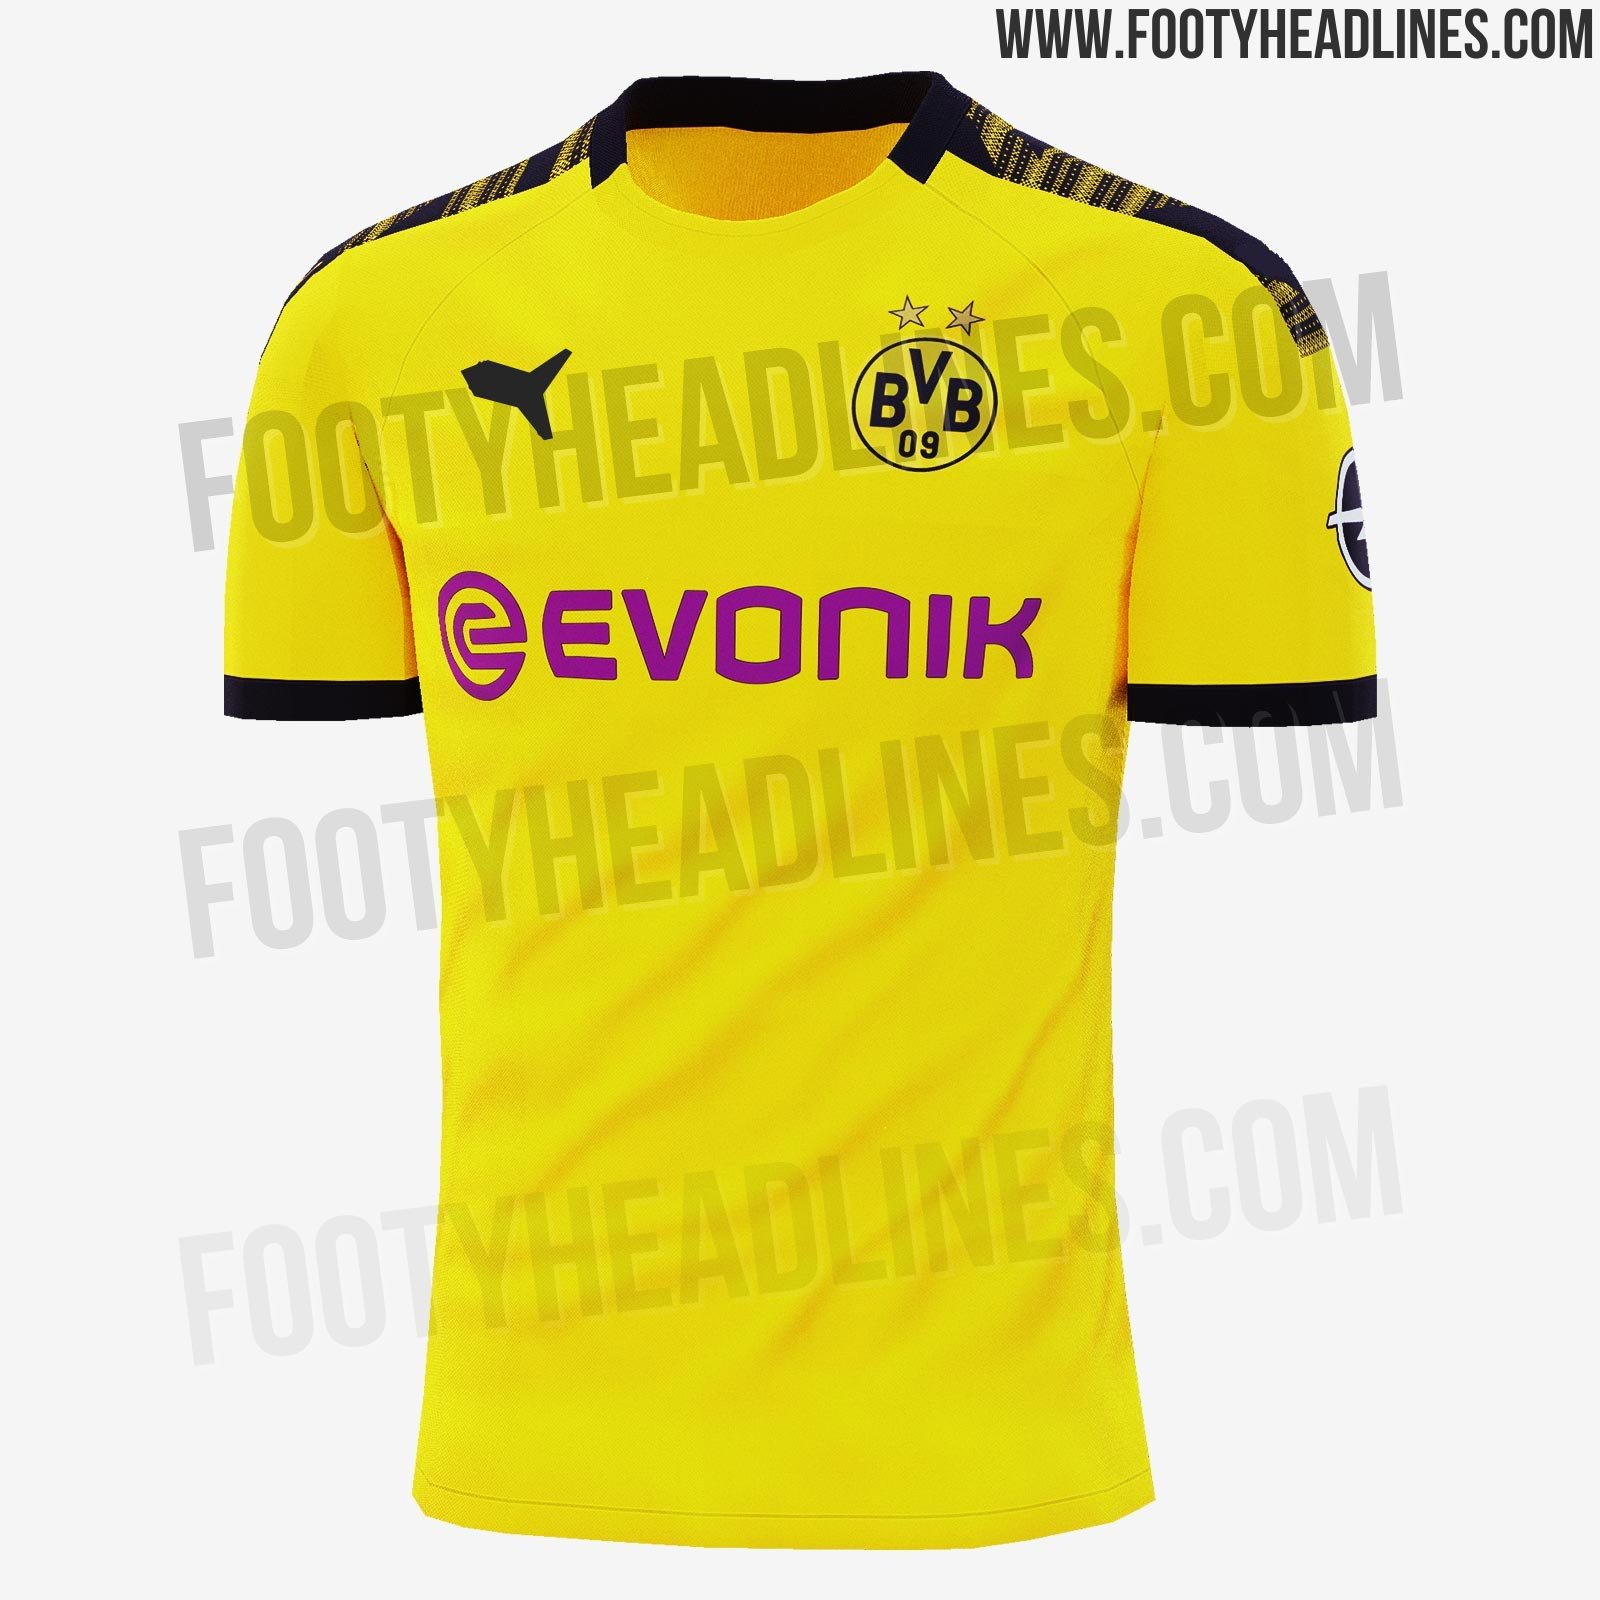 d767eeeb1 The BVB 2019-20 home jersey is set for a release one week earlier as BVB s  last home match of the season is already on May 11 against Fortuna  Düsseldorf.